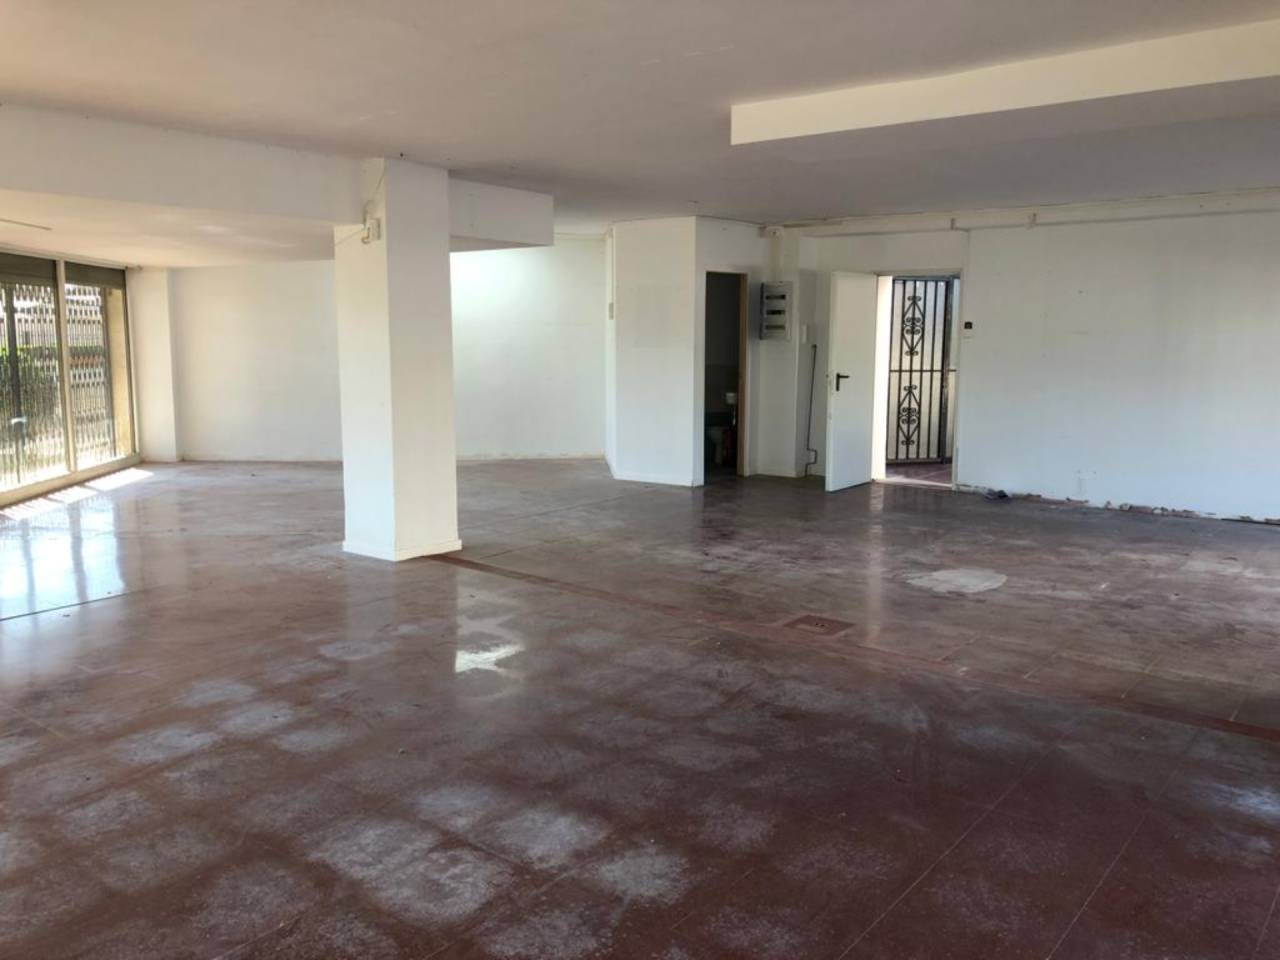 008701 - COMMERCIAL PREMISES FOR RENT SANTA MARGARITA